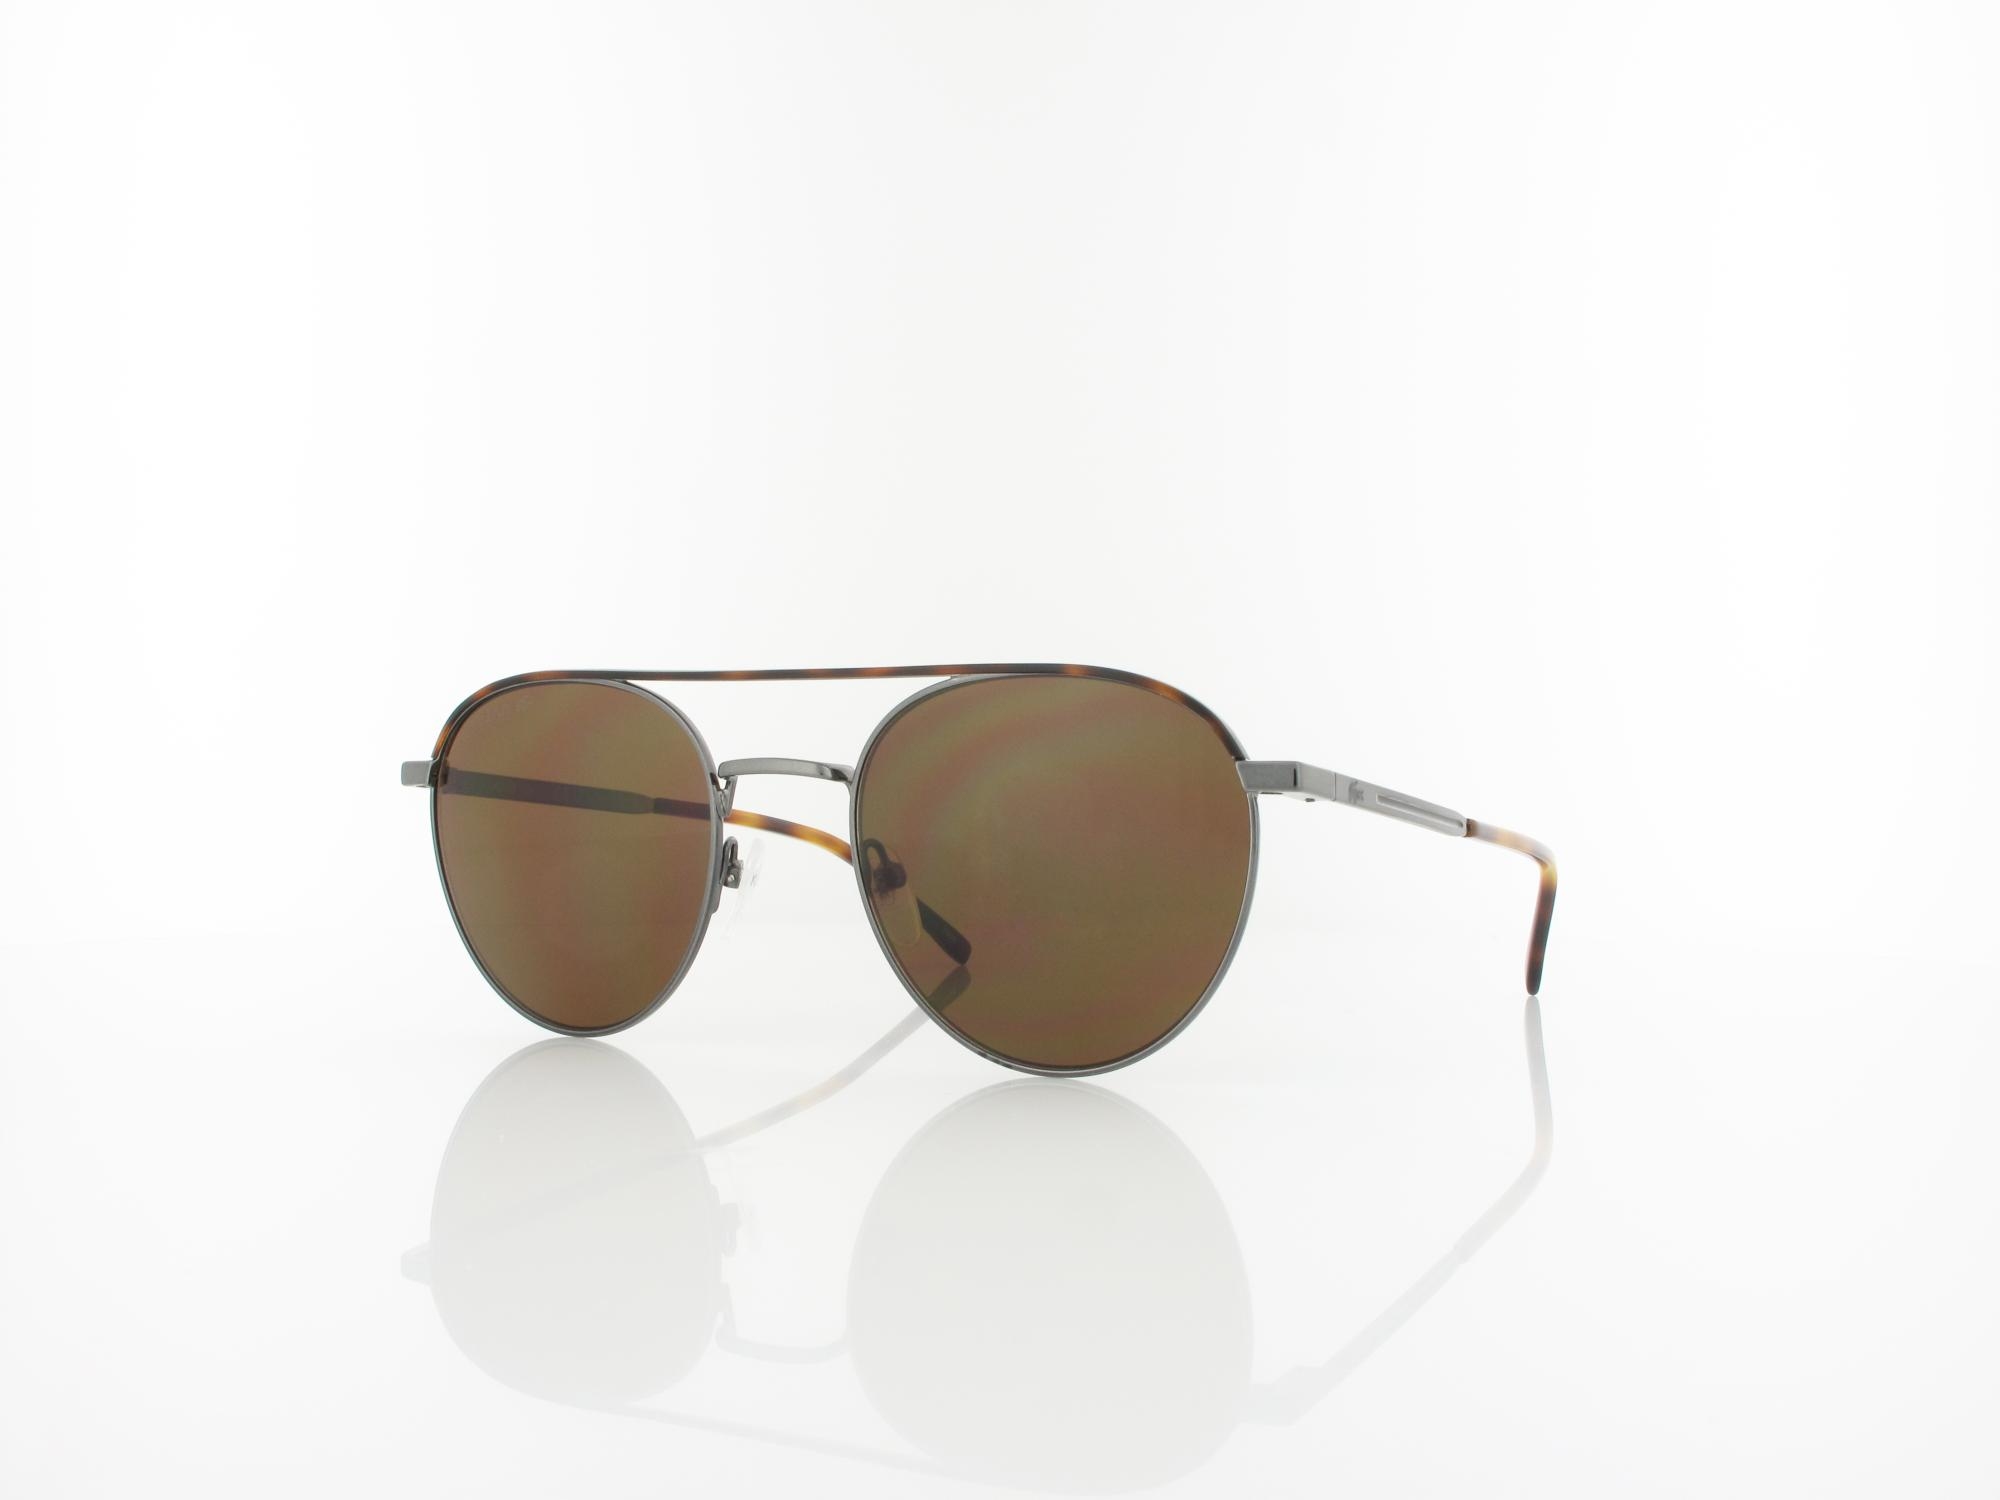 Lacoste | L228S 024 52 | grey / solid brown